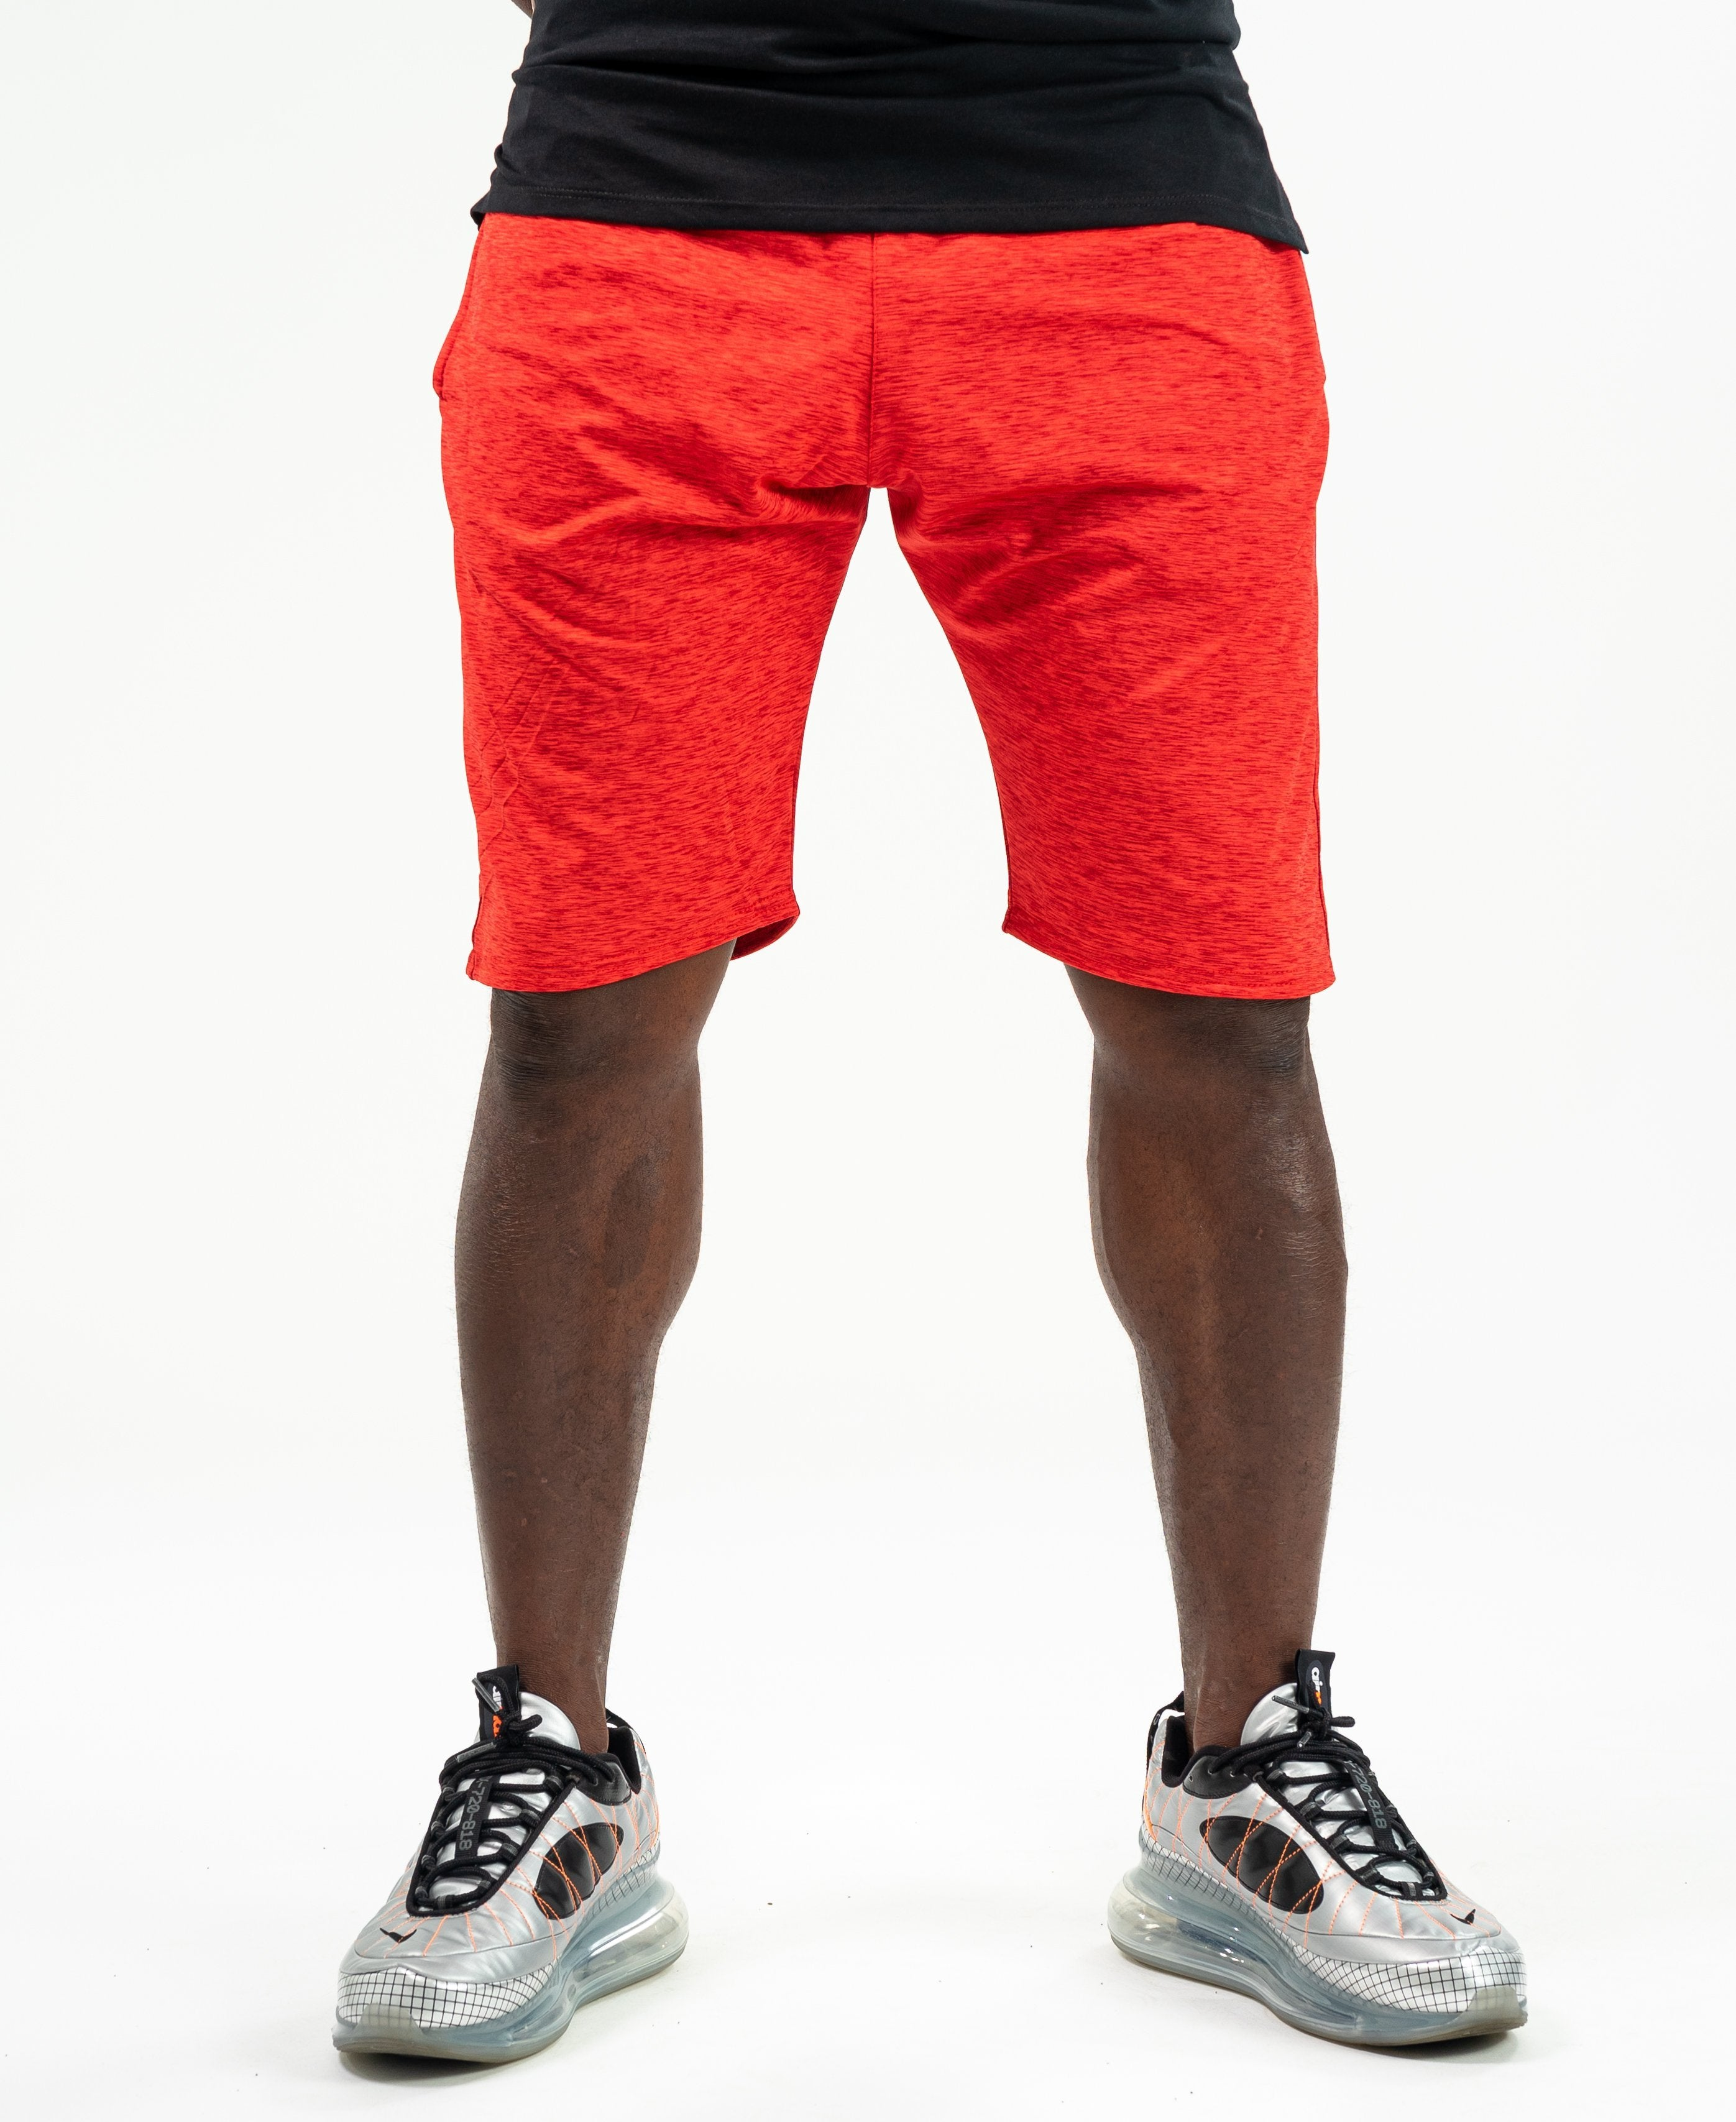 Short trousers - Fatai Style